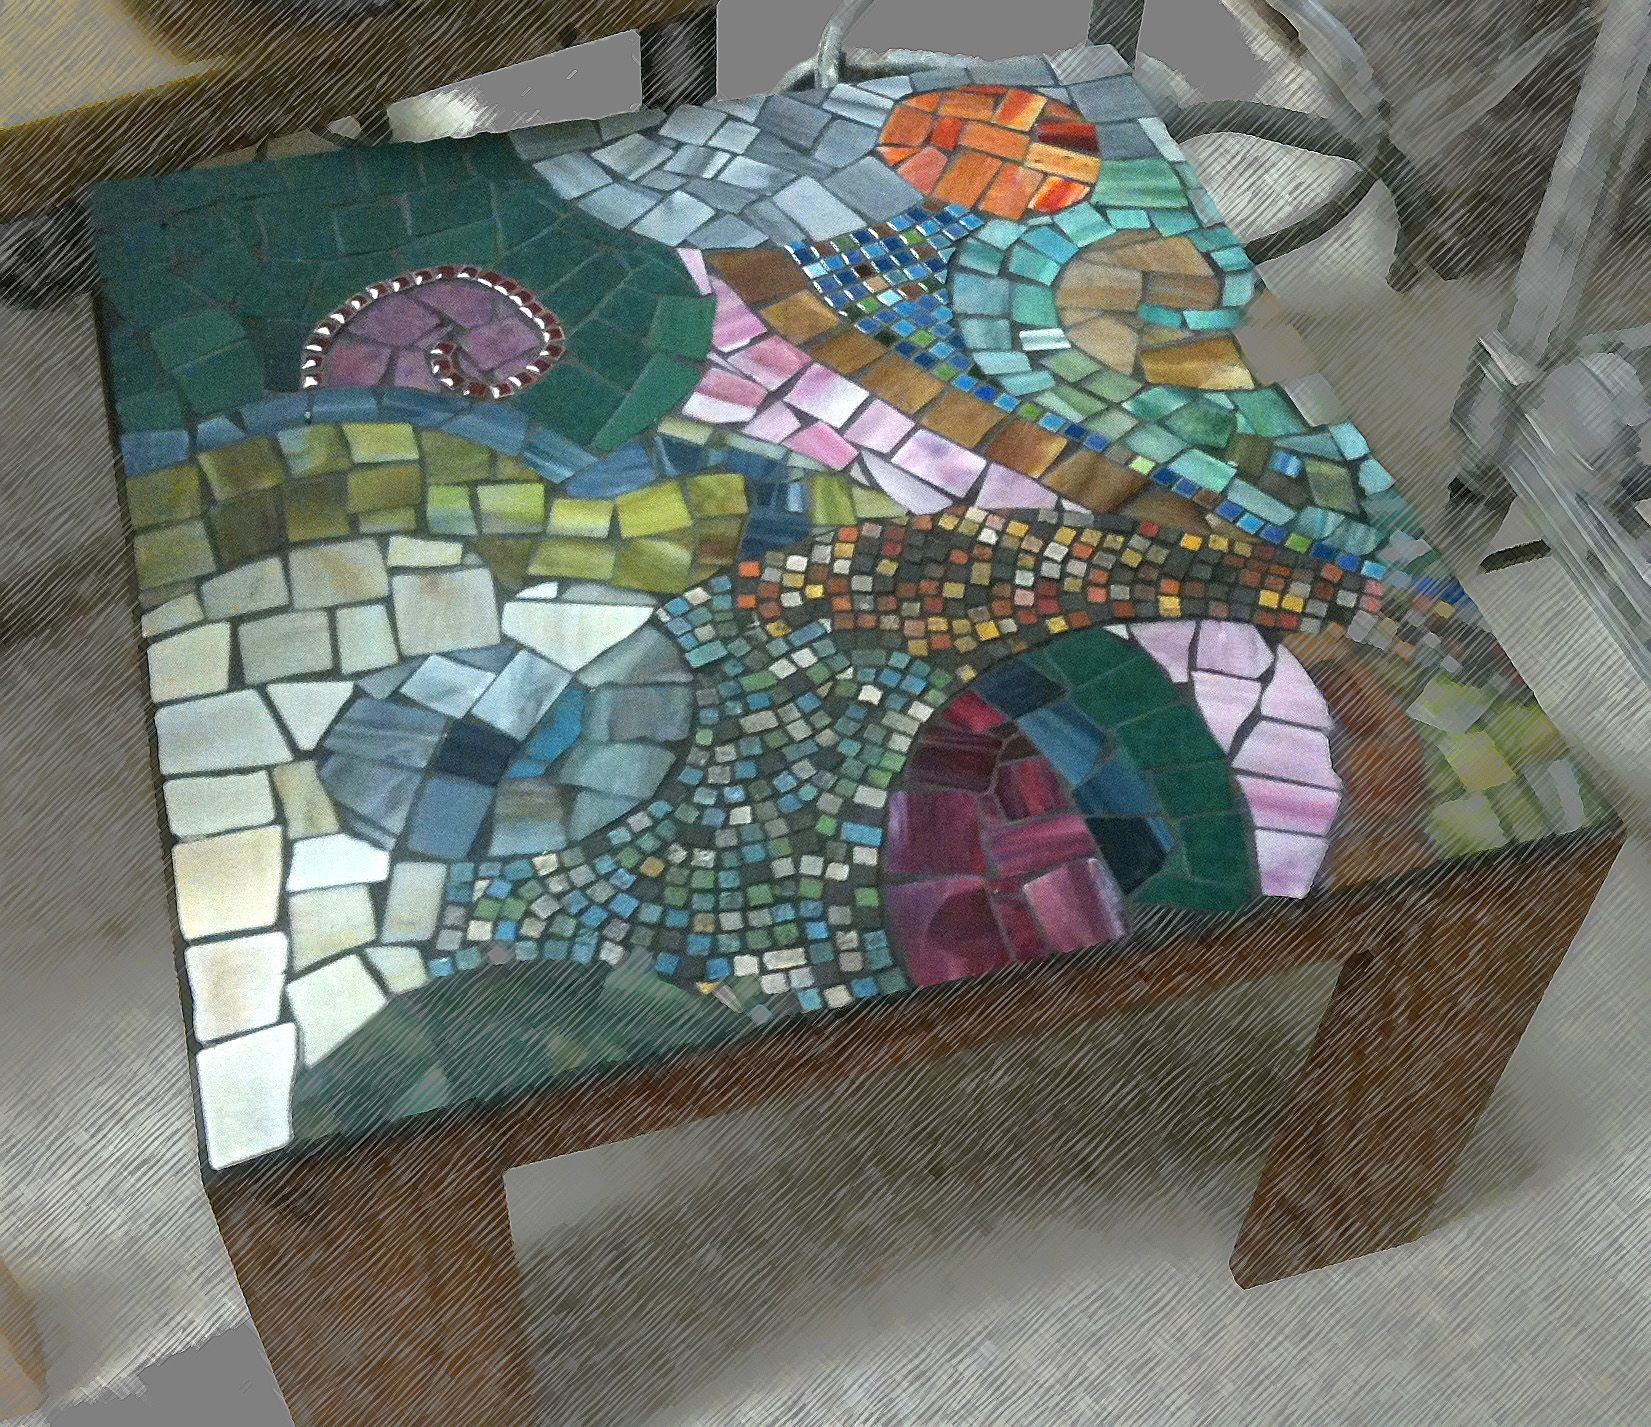 Table Mosaic Patterns: Love The Colors And Design